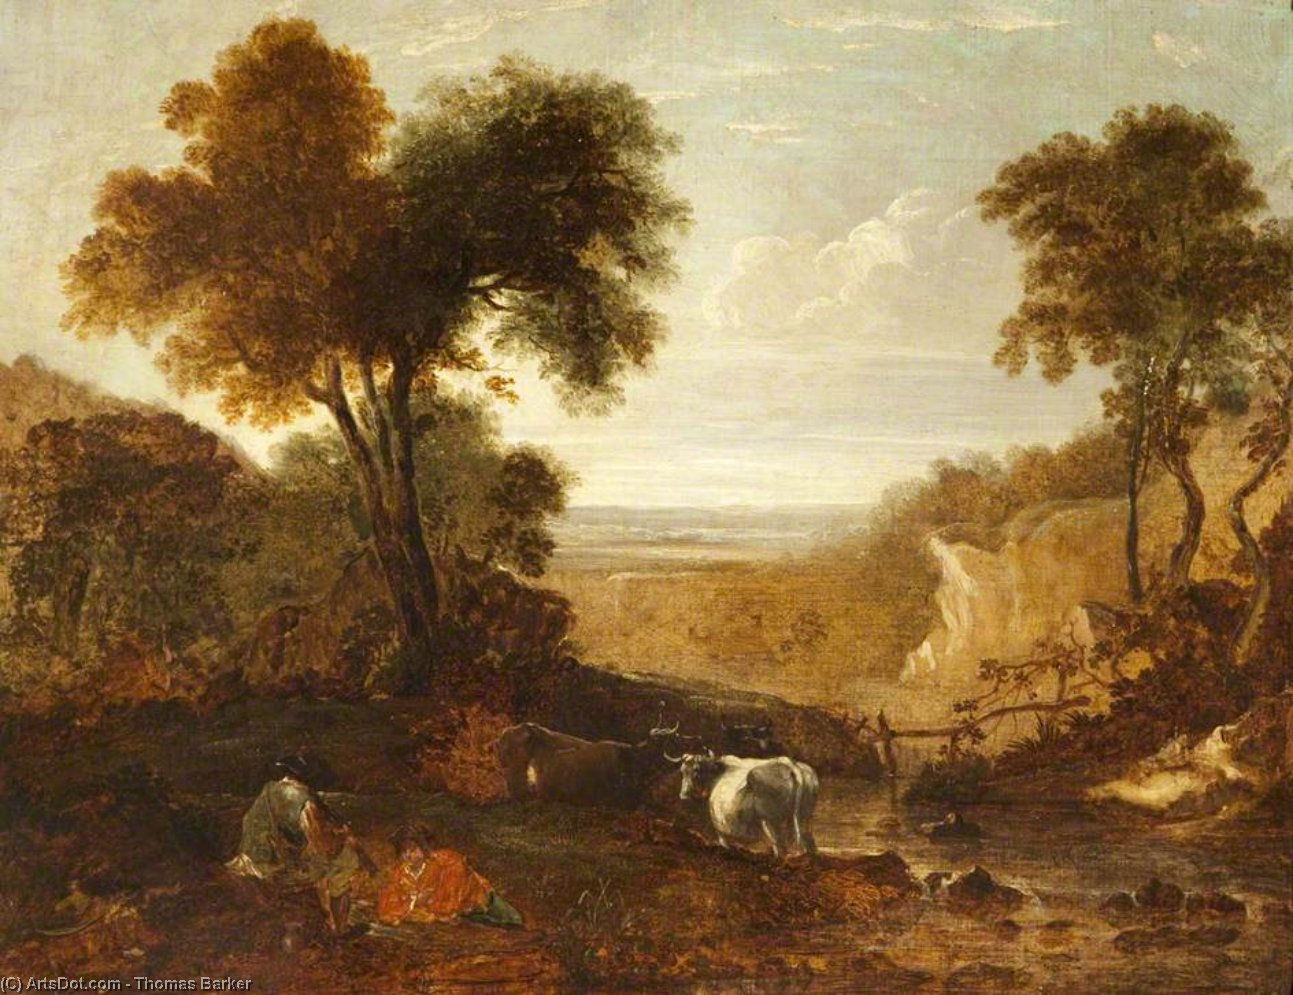 Landscape With Figures And Cattle by Thomas Barker (1769-1847, United States)